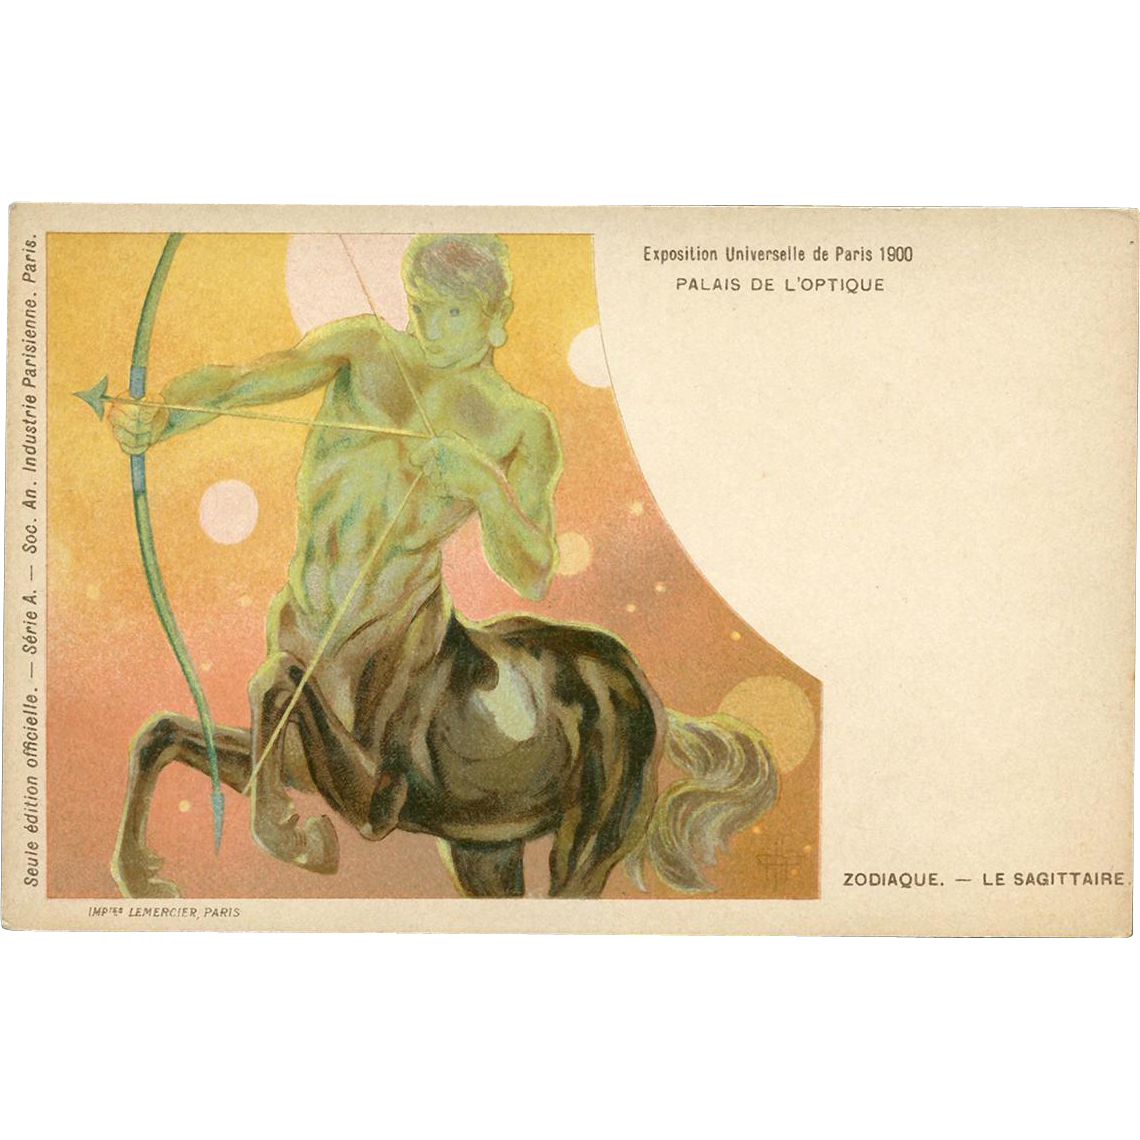 Zodiac Constellation Sagittarius Centaur Astrology Postcard Art Nouveau Lithograph from Paris Expo 1900